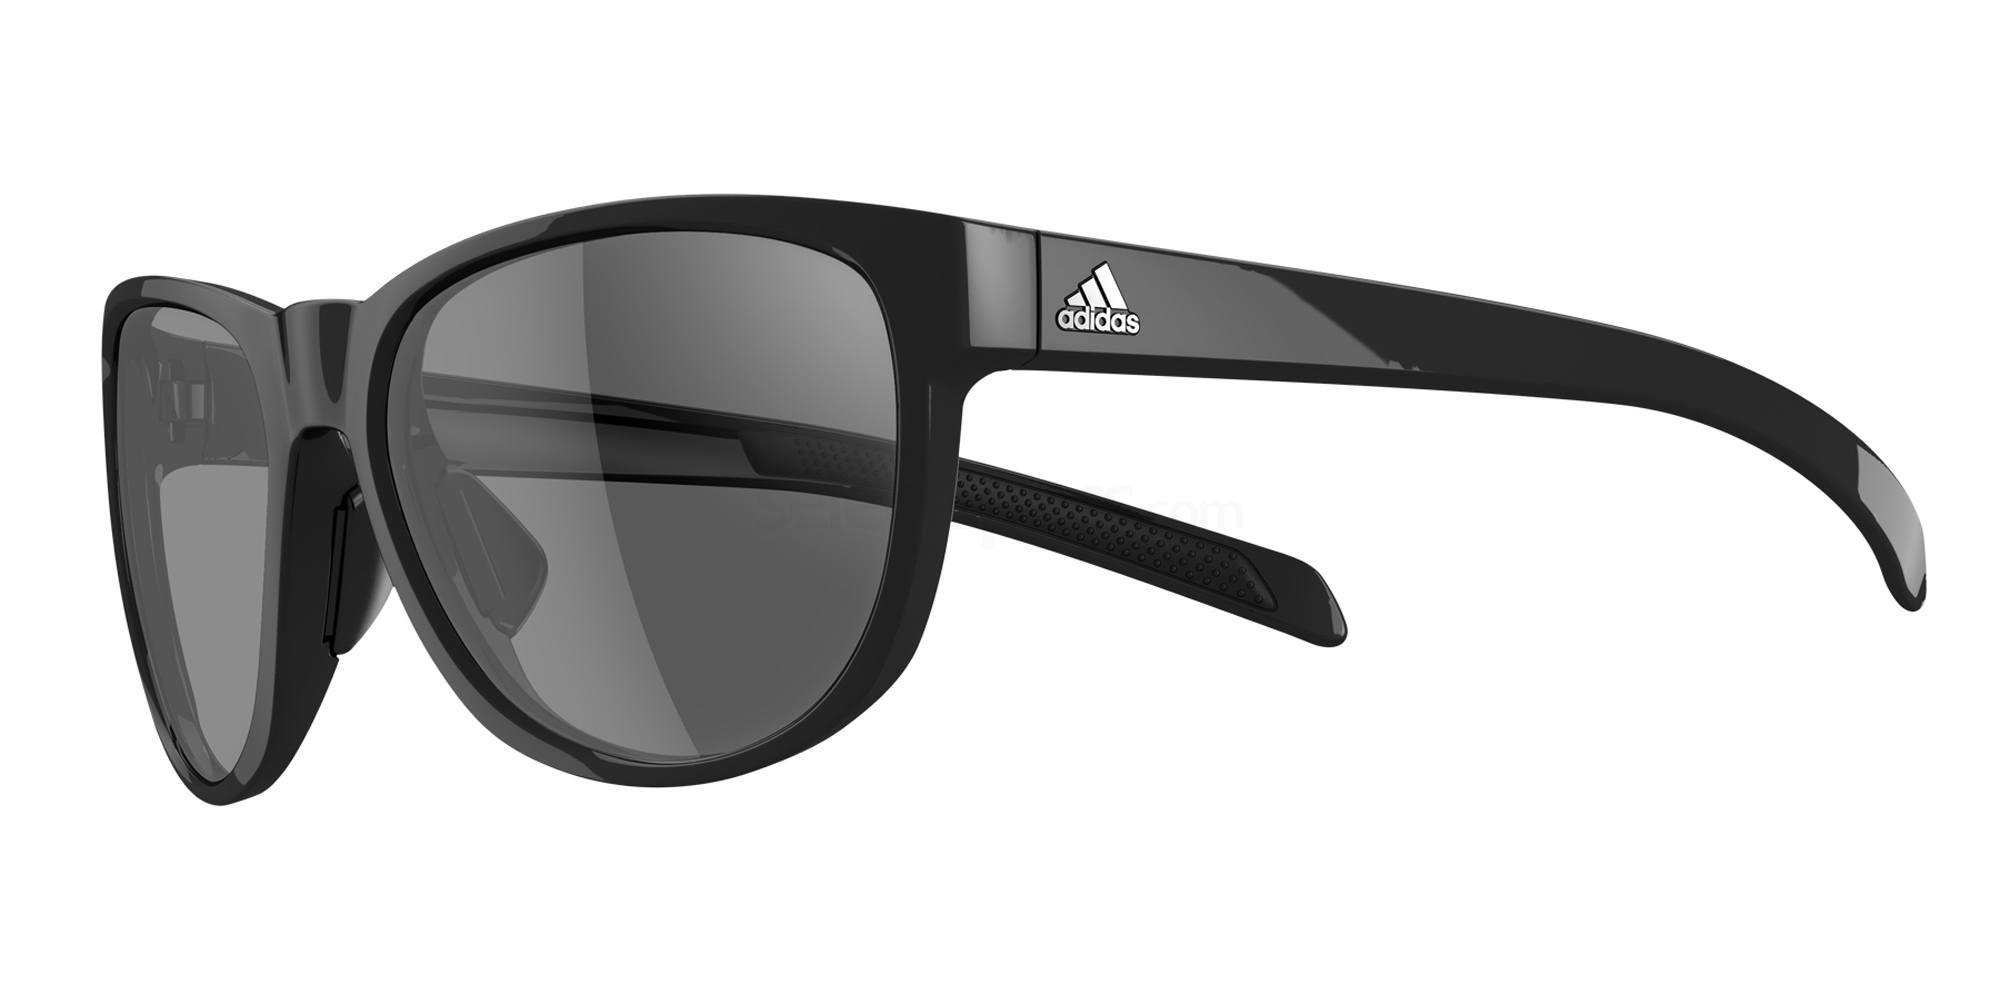 a425 00 6050 a425 wildcharge Sunglasses, Adidas